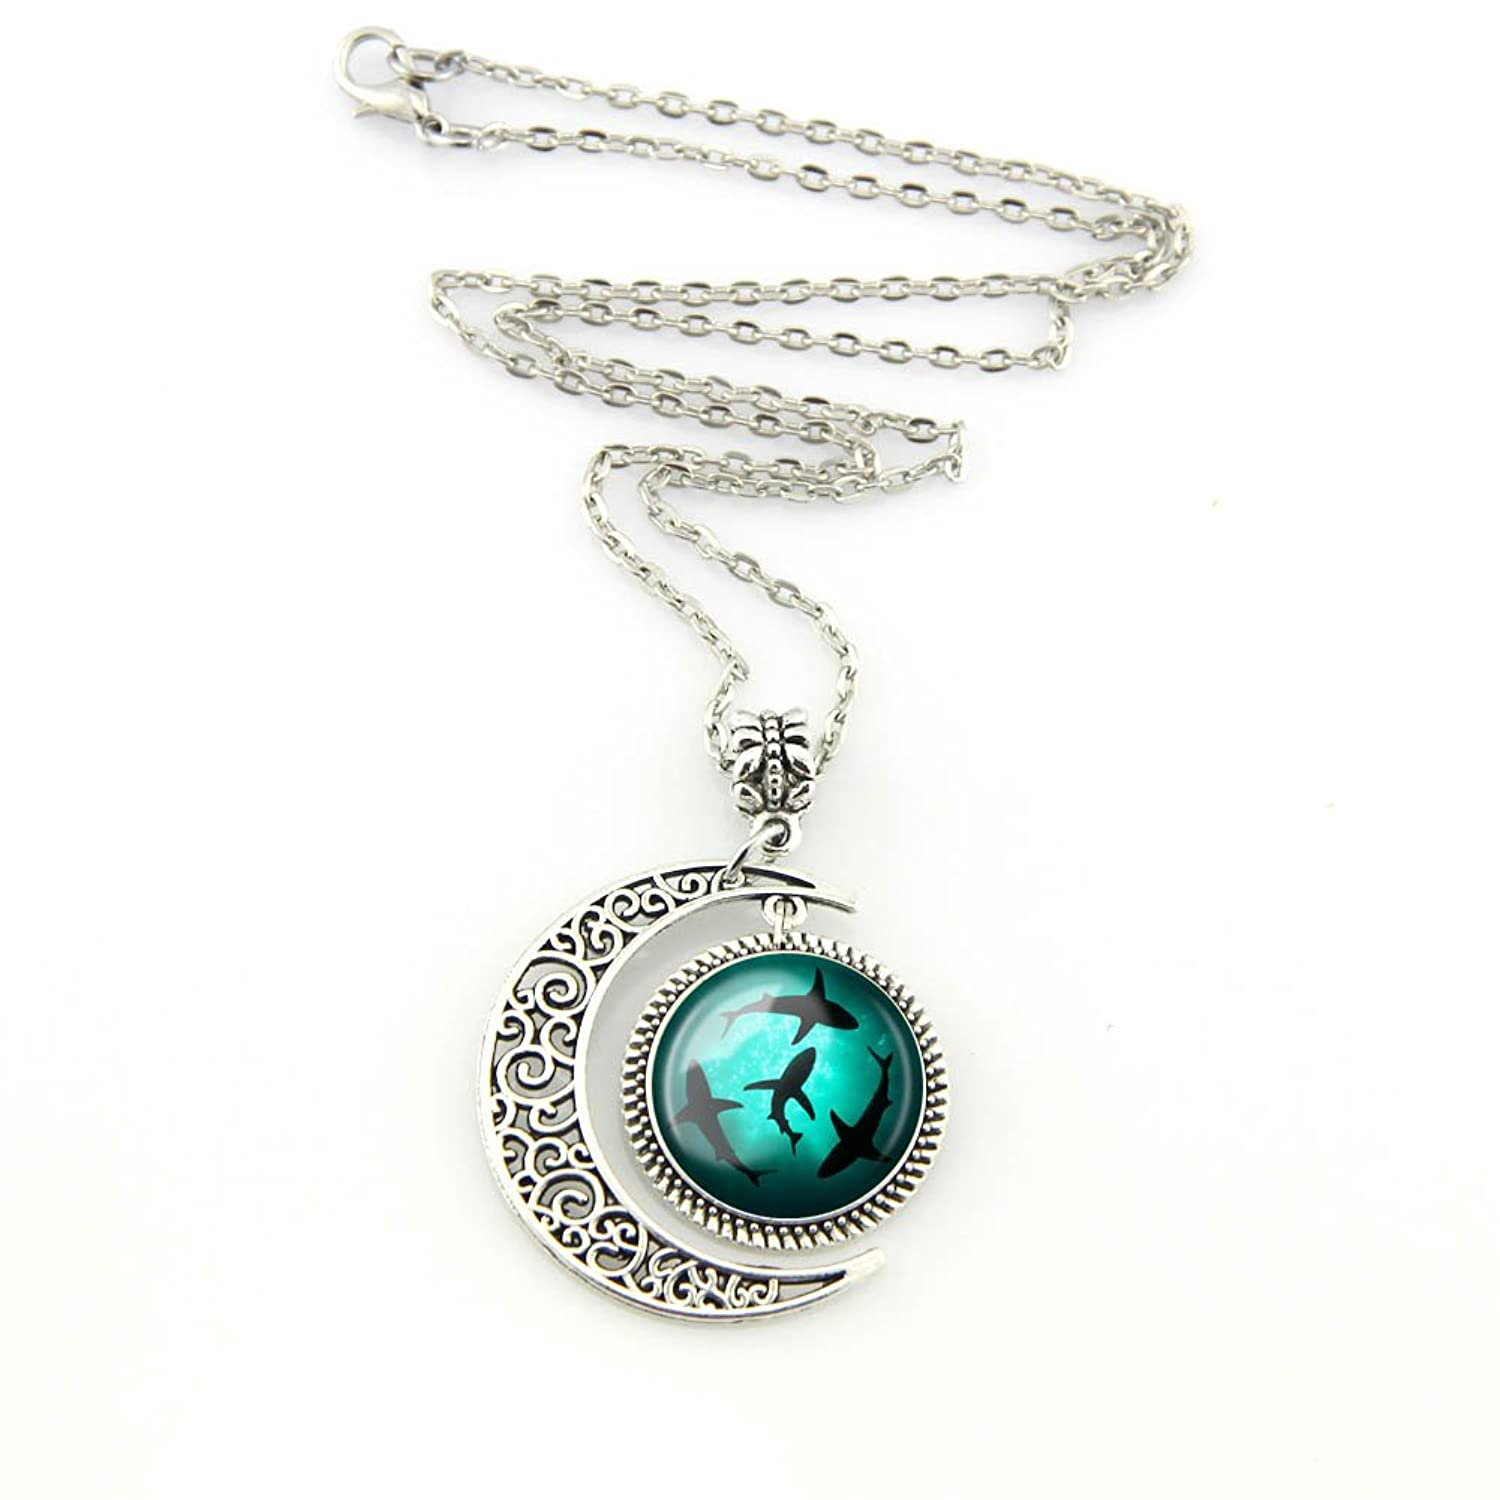 for glow accessories necklace women pendant on necklaces jewelry moon fashion heart item from luminous sailor the in dark